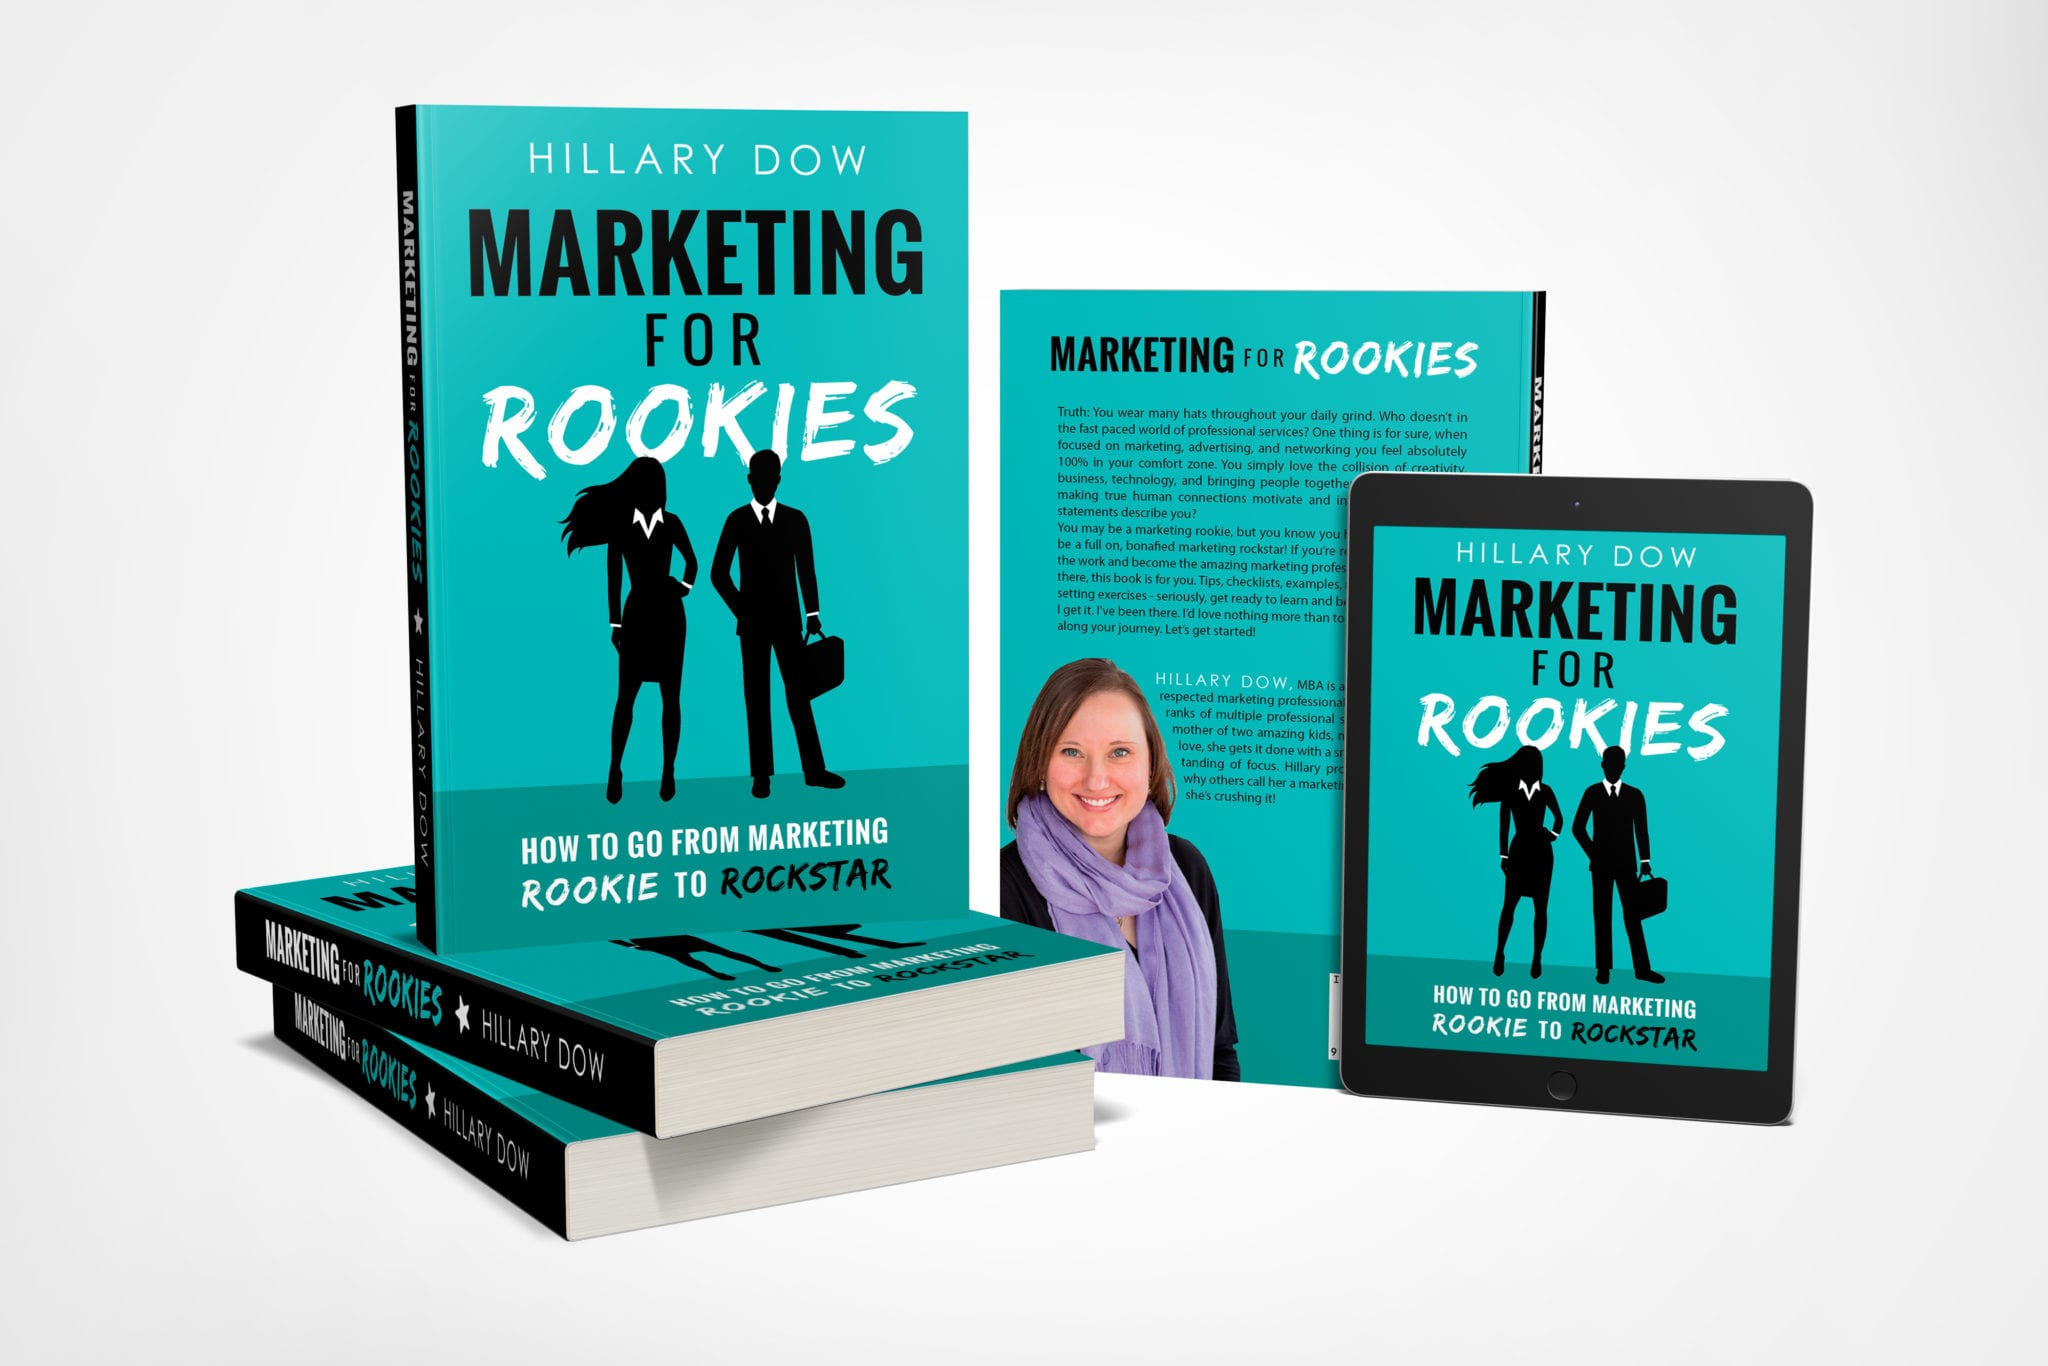 Marketing for Rookies by Hillary